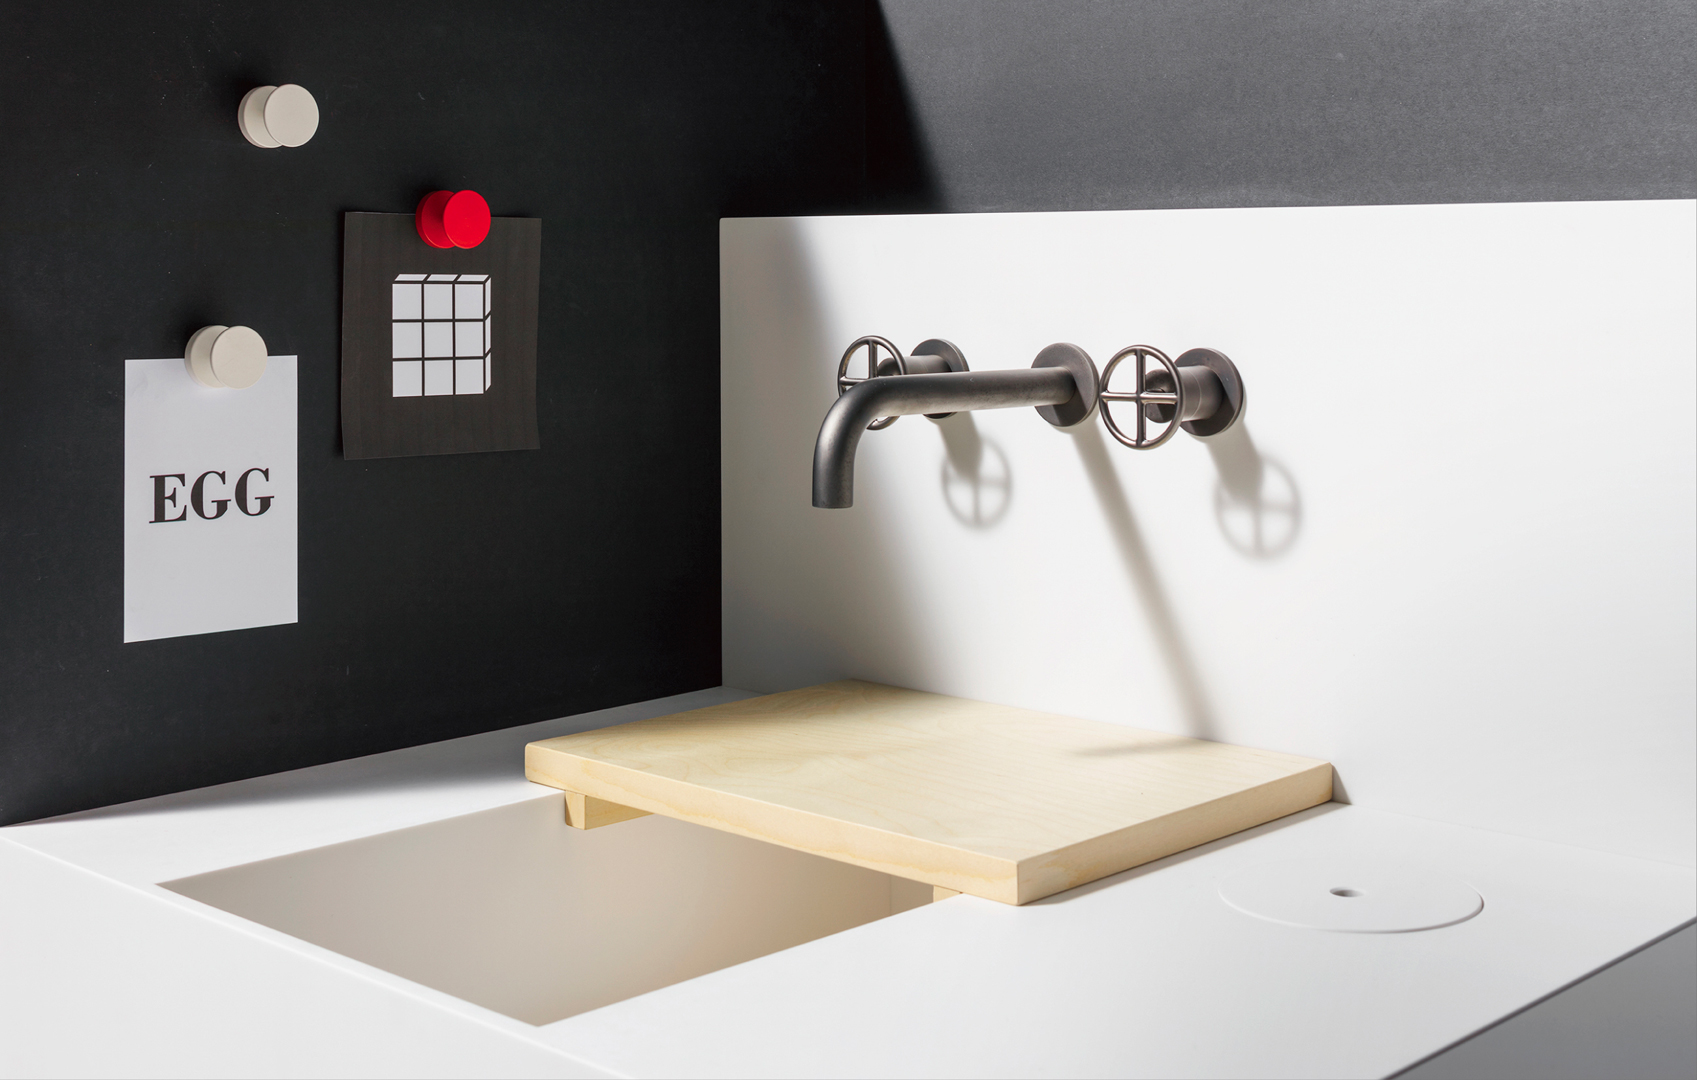 Elisa Ossino's  diminutive 'E0 01' kitchen for Japanese manufacturer  Sanwa . At only 1.2 square metres the kitchen should fit into even the smallest apartments. The kitchen features magnetic walls for notes & recipes, an integrated wooden cutting board, sink and dual induction hob. Photograph by Giuseppe De Francesco.